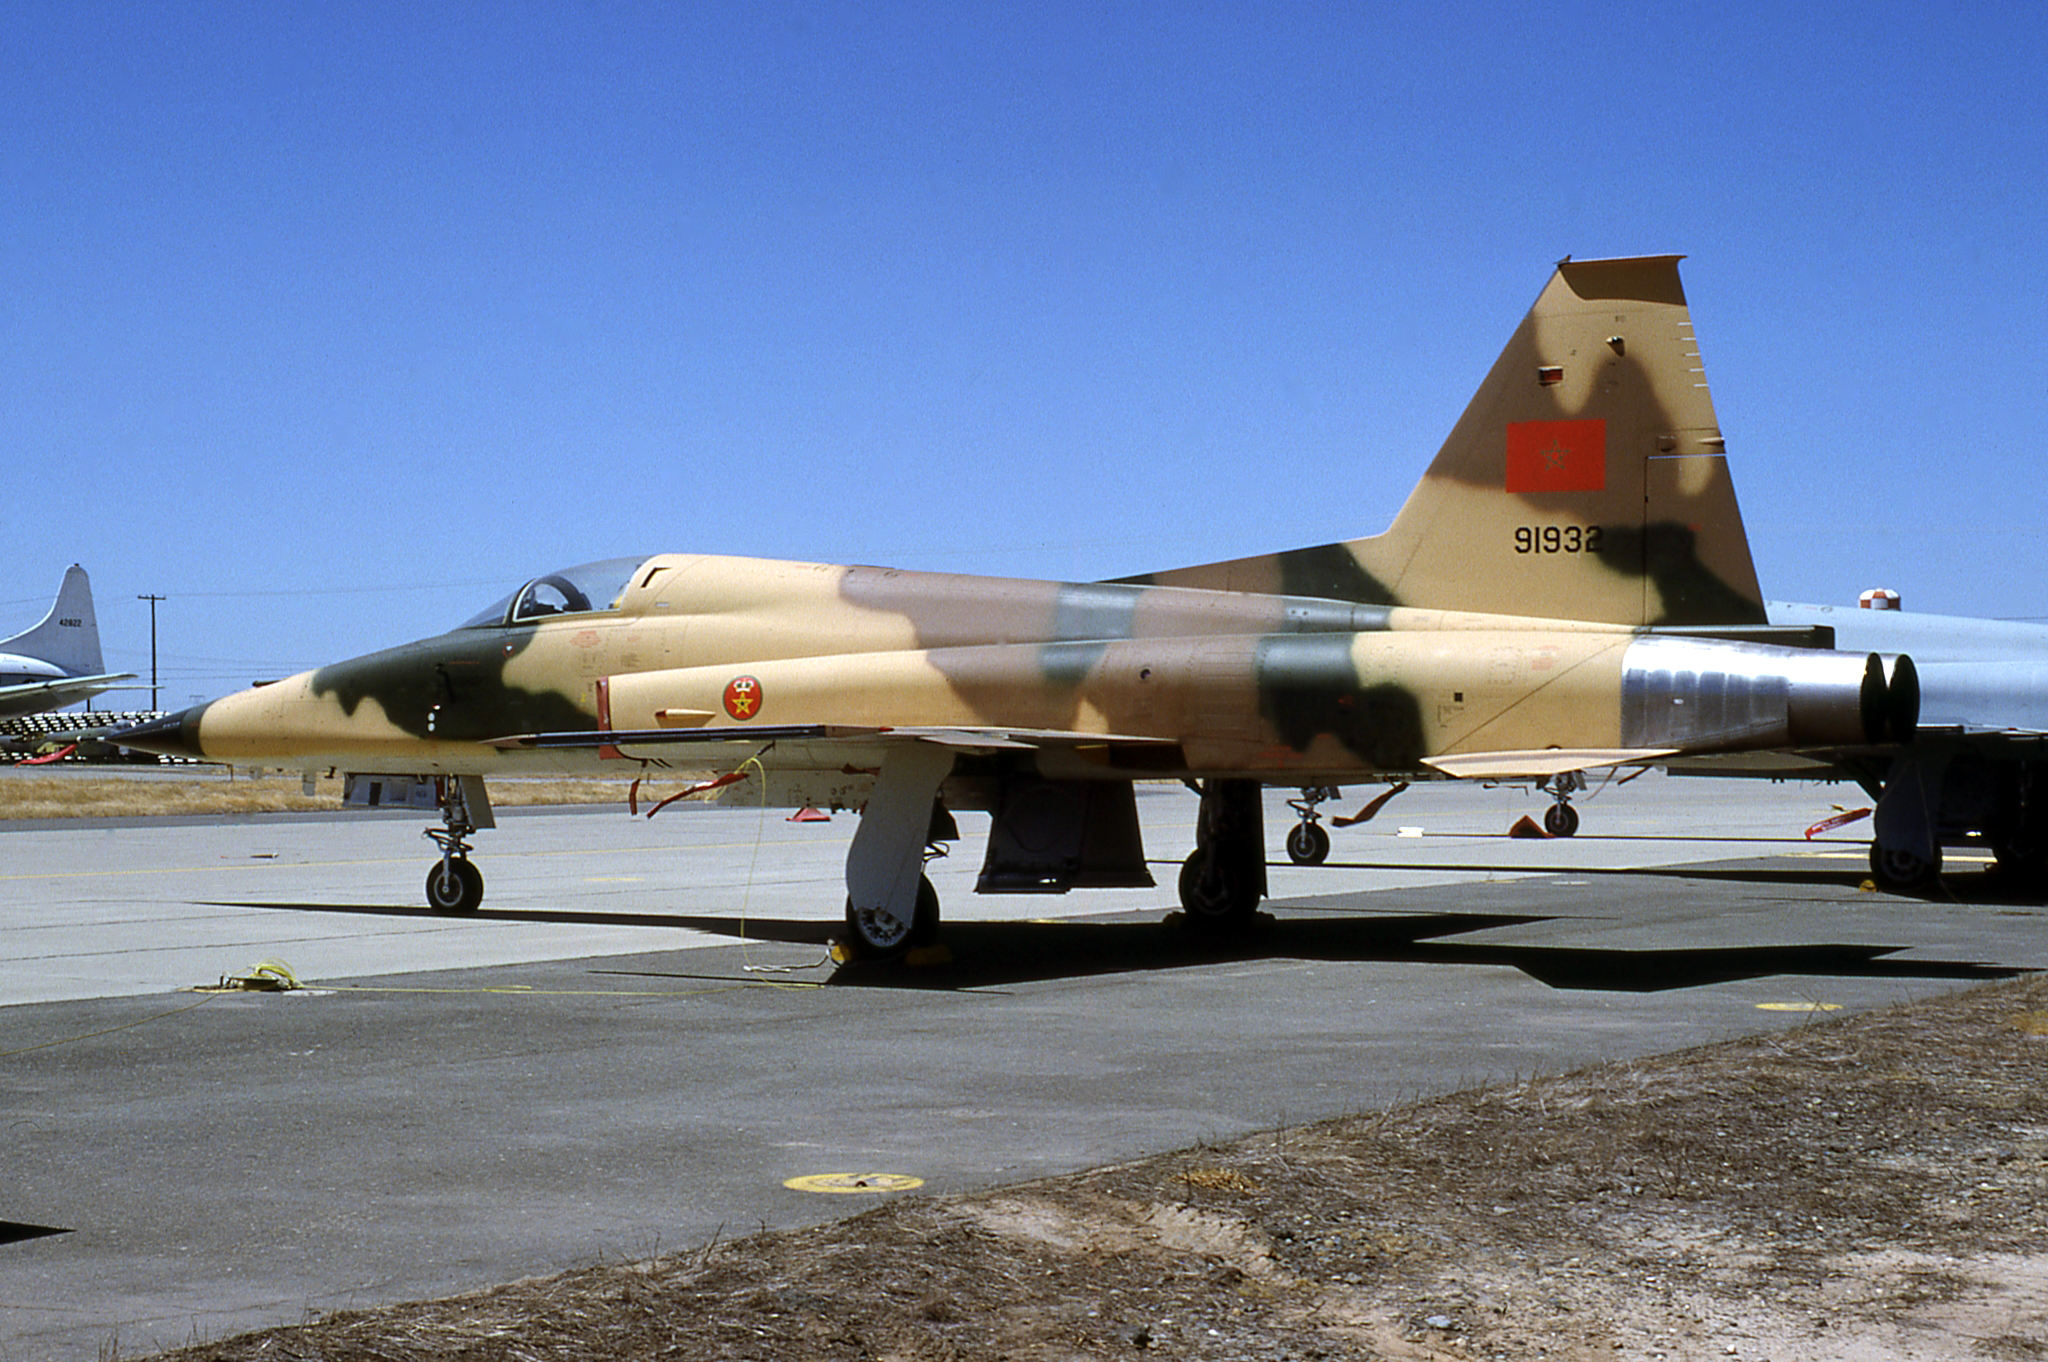 FRA: Photos F-5 marocains / Moroccan F-5  - Page 13 49932757308_a8dc664887_o_d